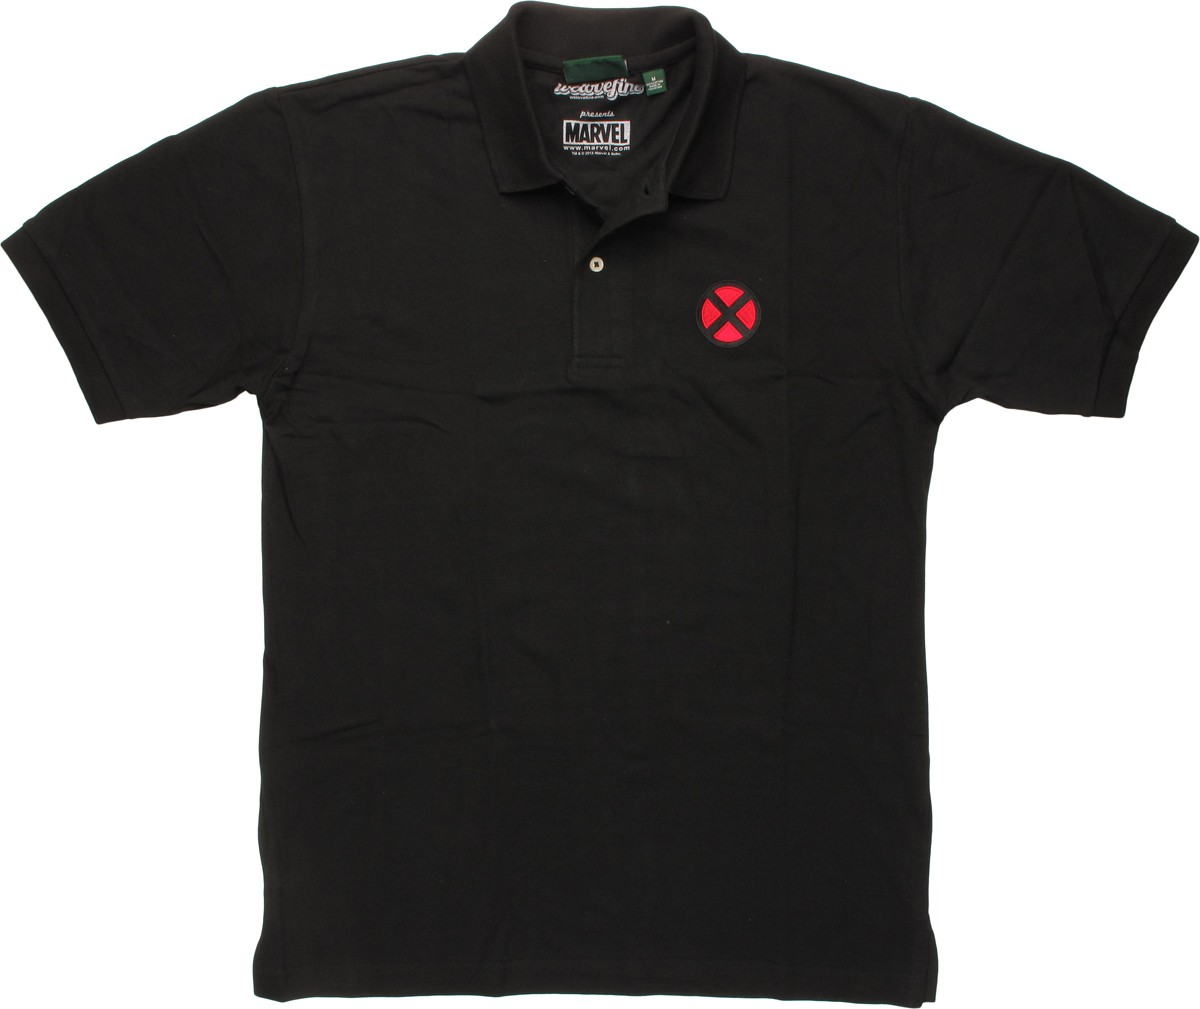 X men embroidered logo polo shirt for Shirt with logo embroidered